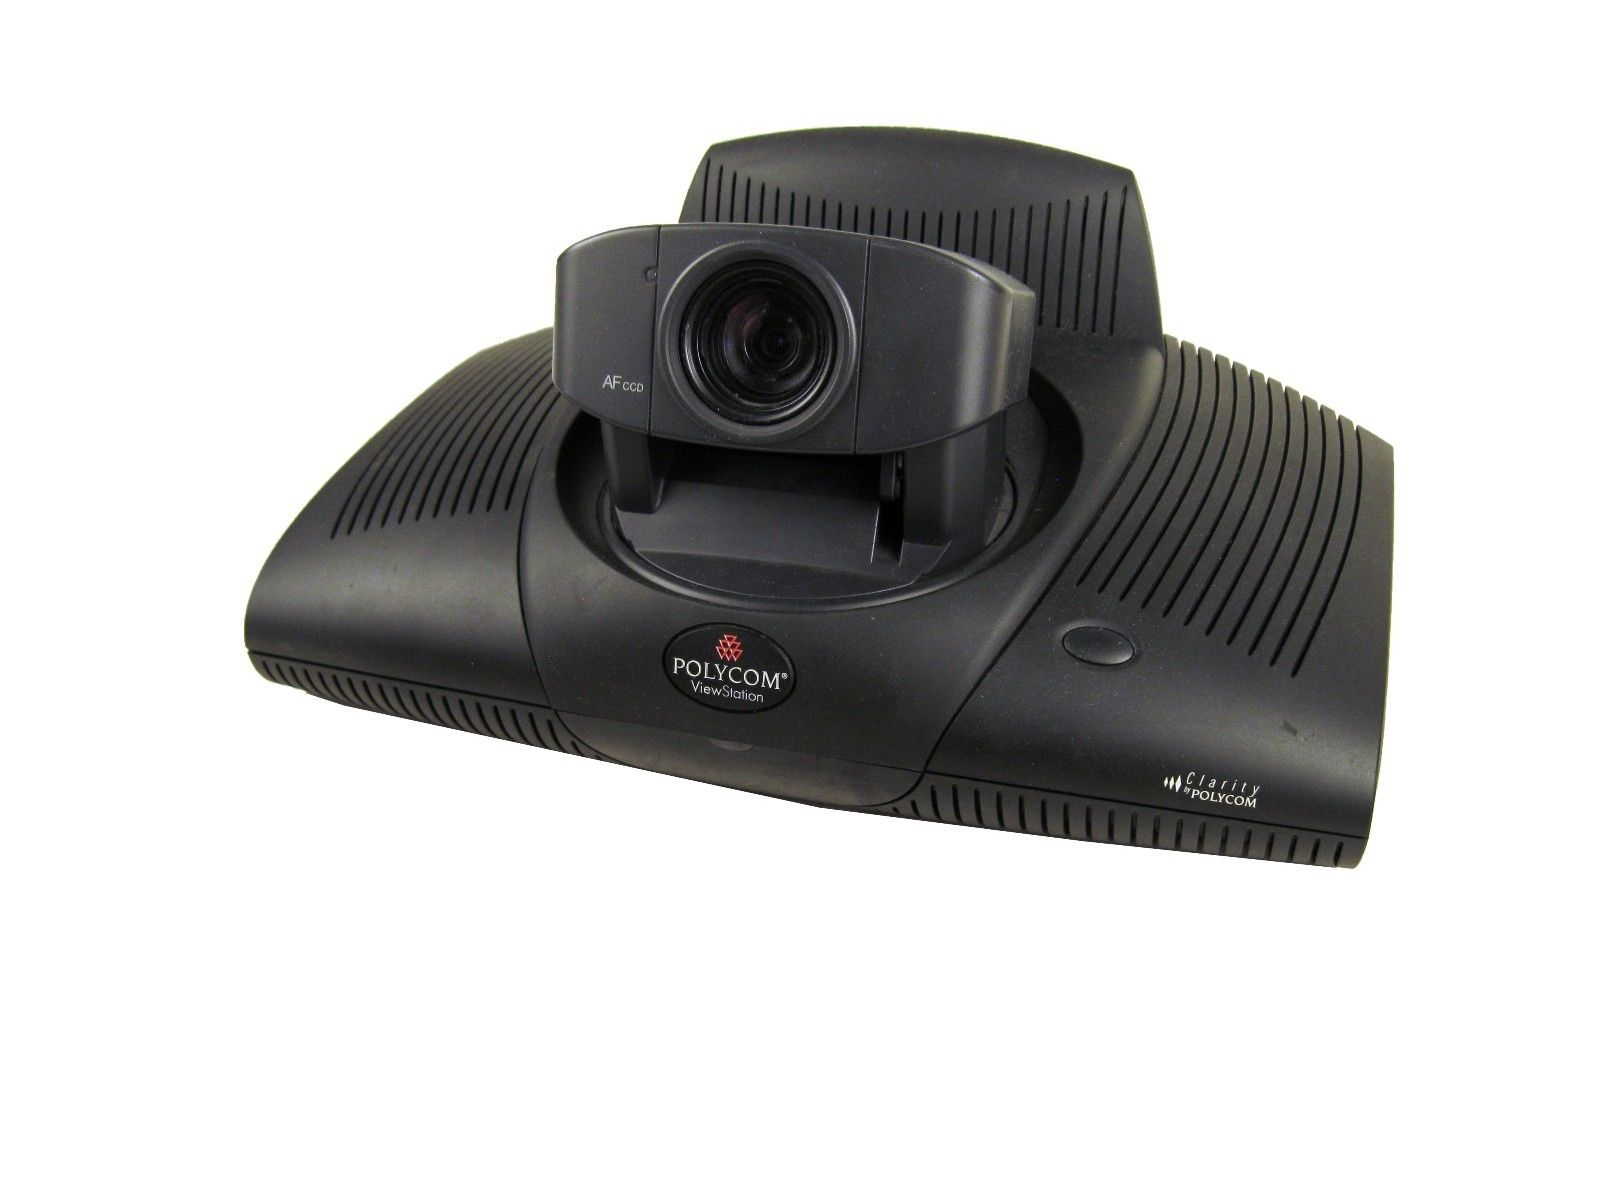 polycom viewstation pvs 1419 video conference system walmart com rh walmart com polycom viewstation pvs-1419 manual